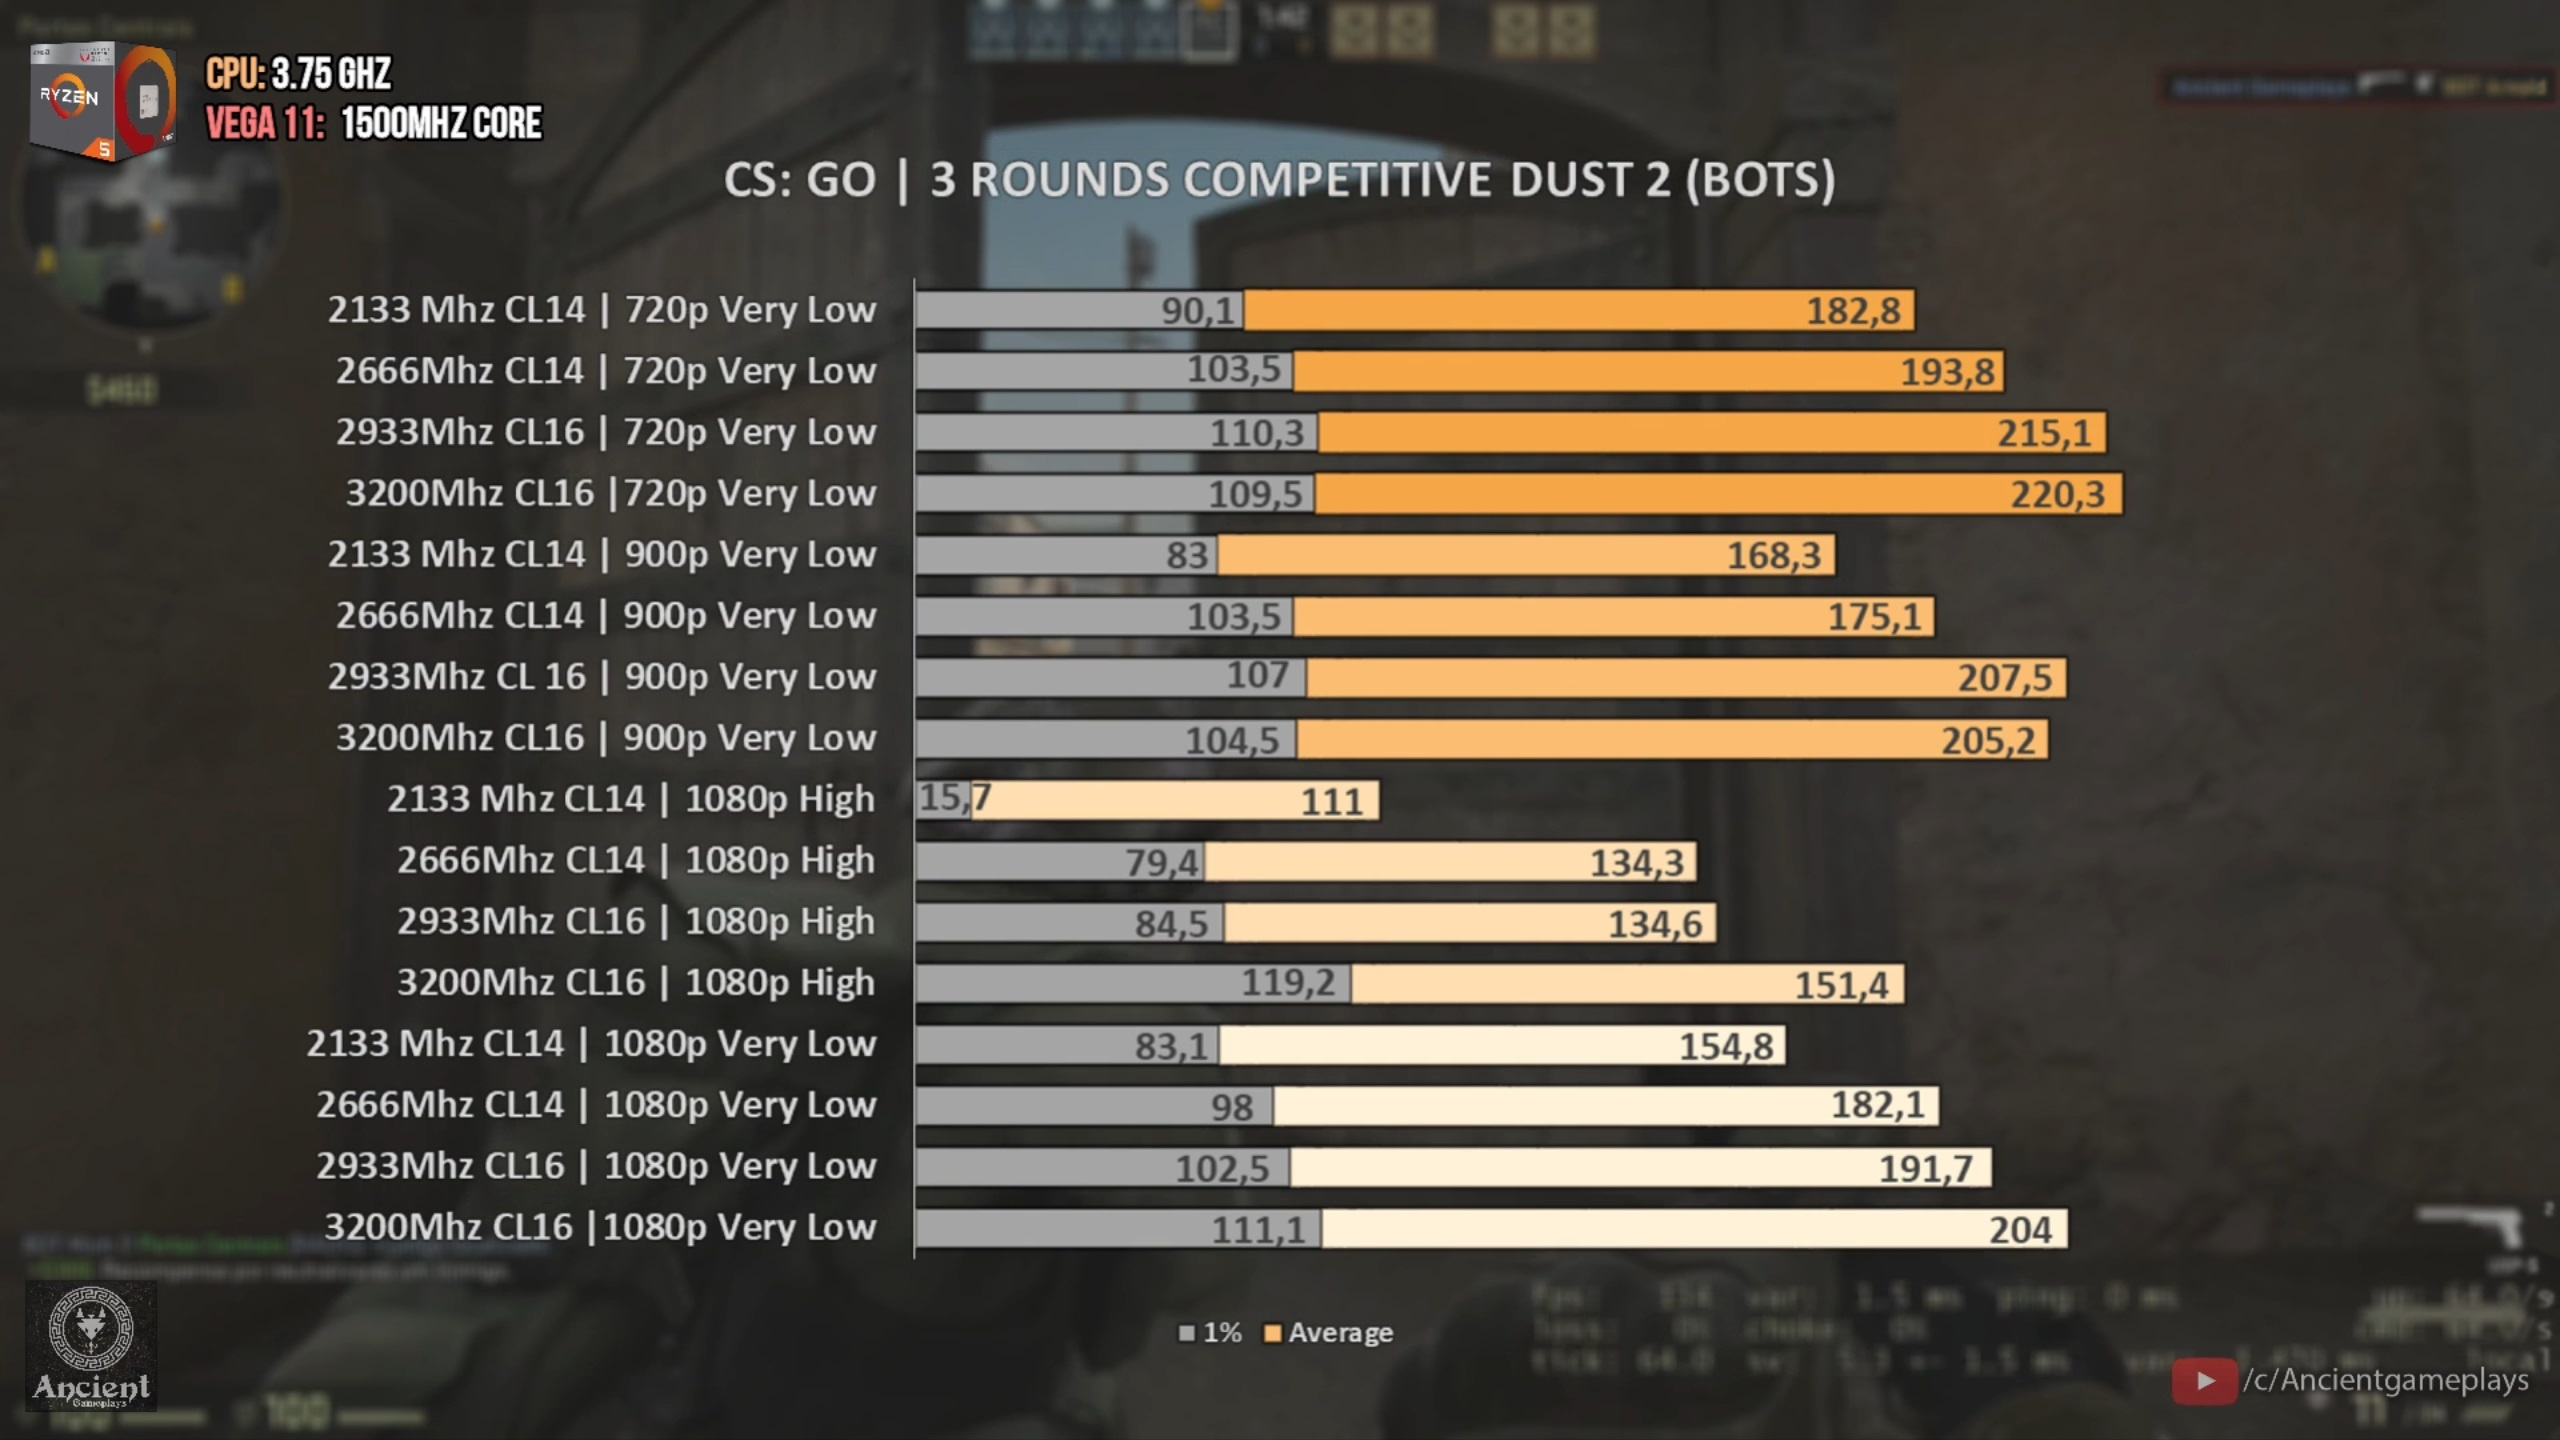 TL:DW Included] Ryzen 5 2400G | DDR4 2133 vs 2667 vs 2933 vs 3200